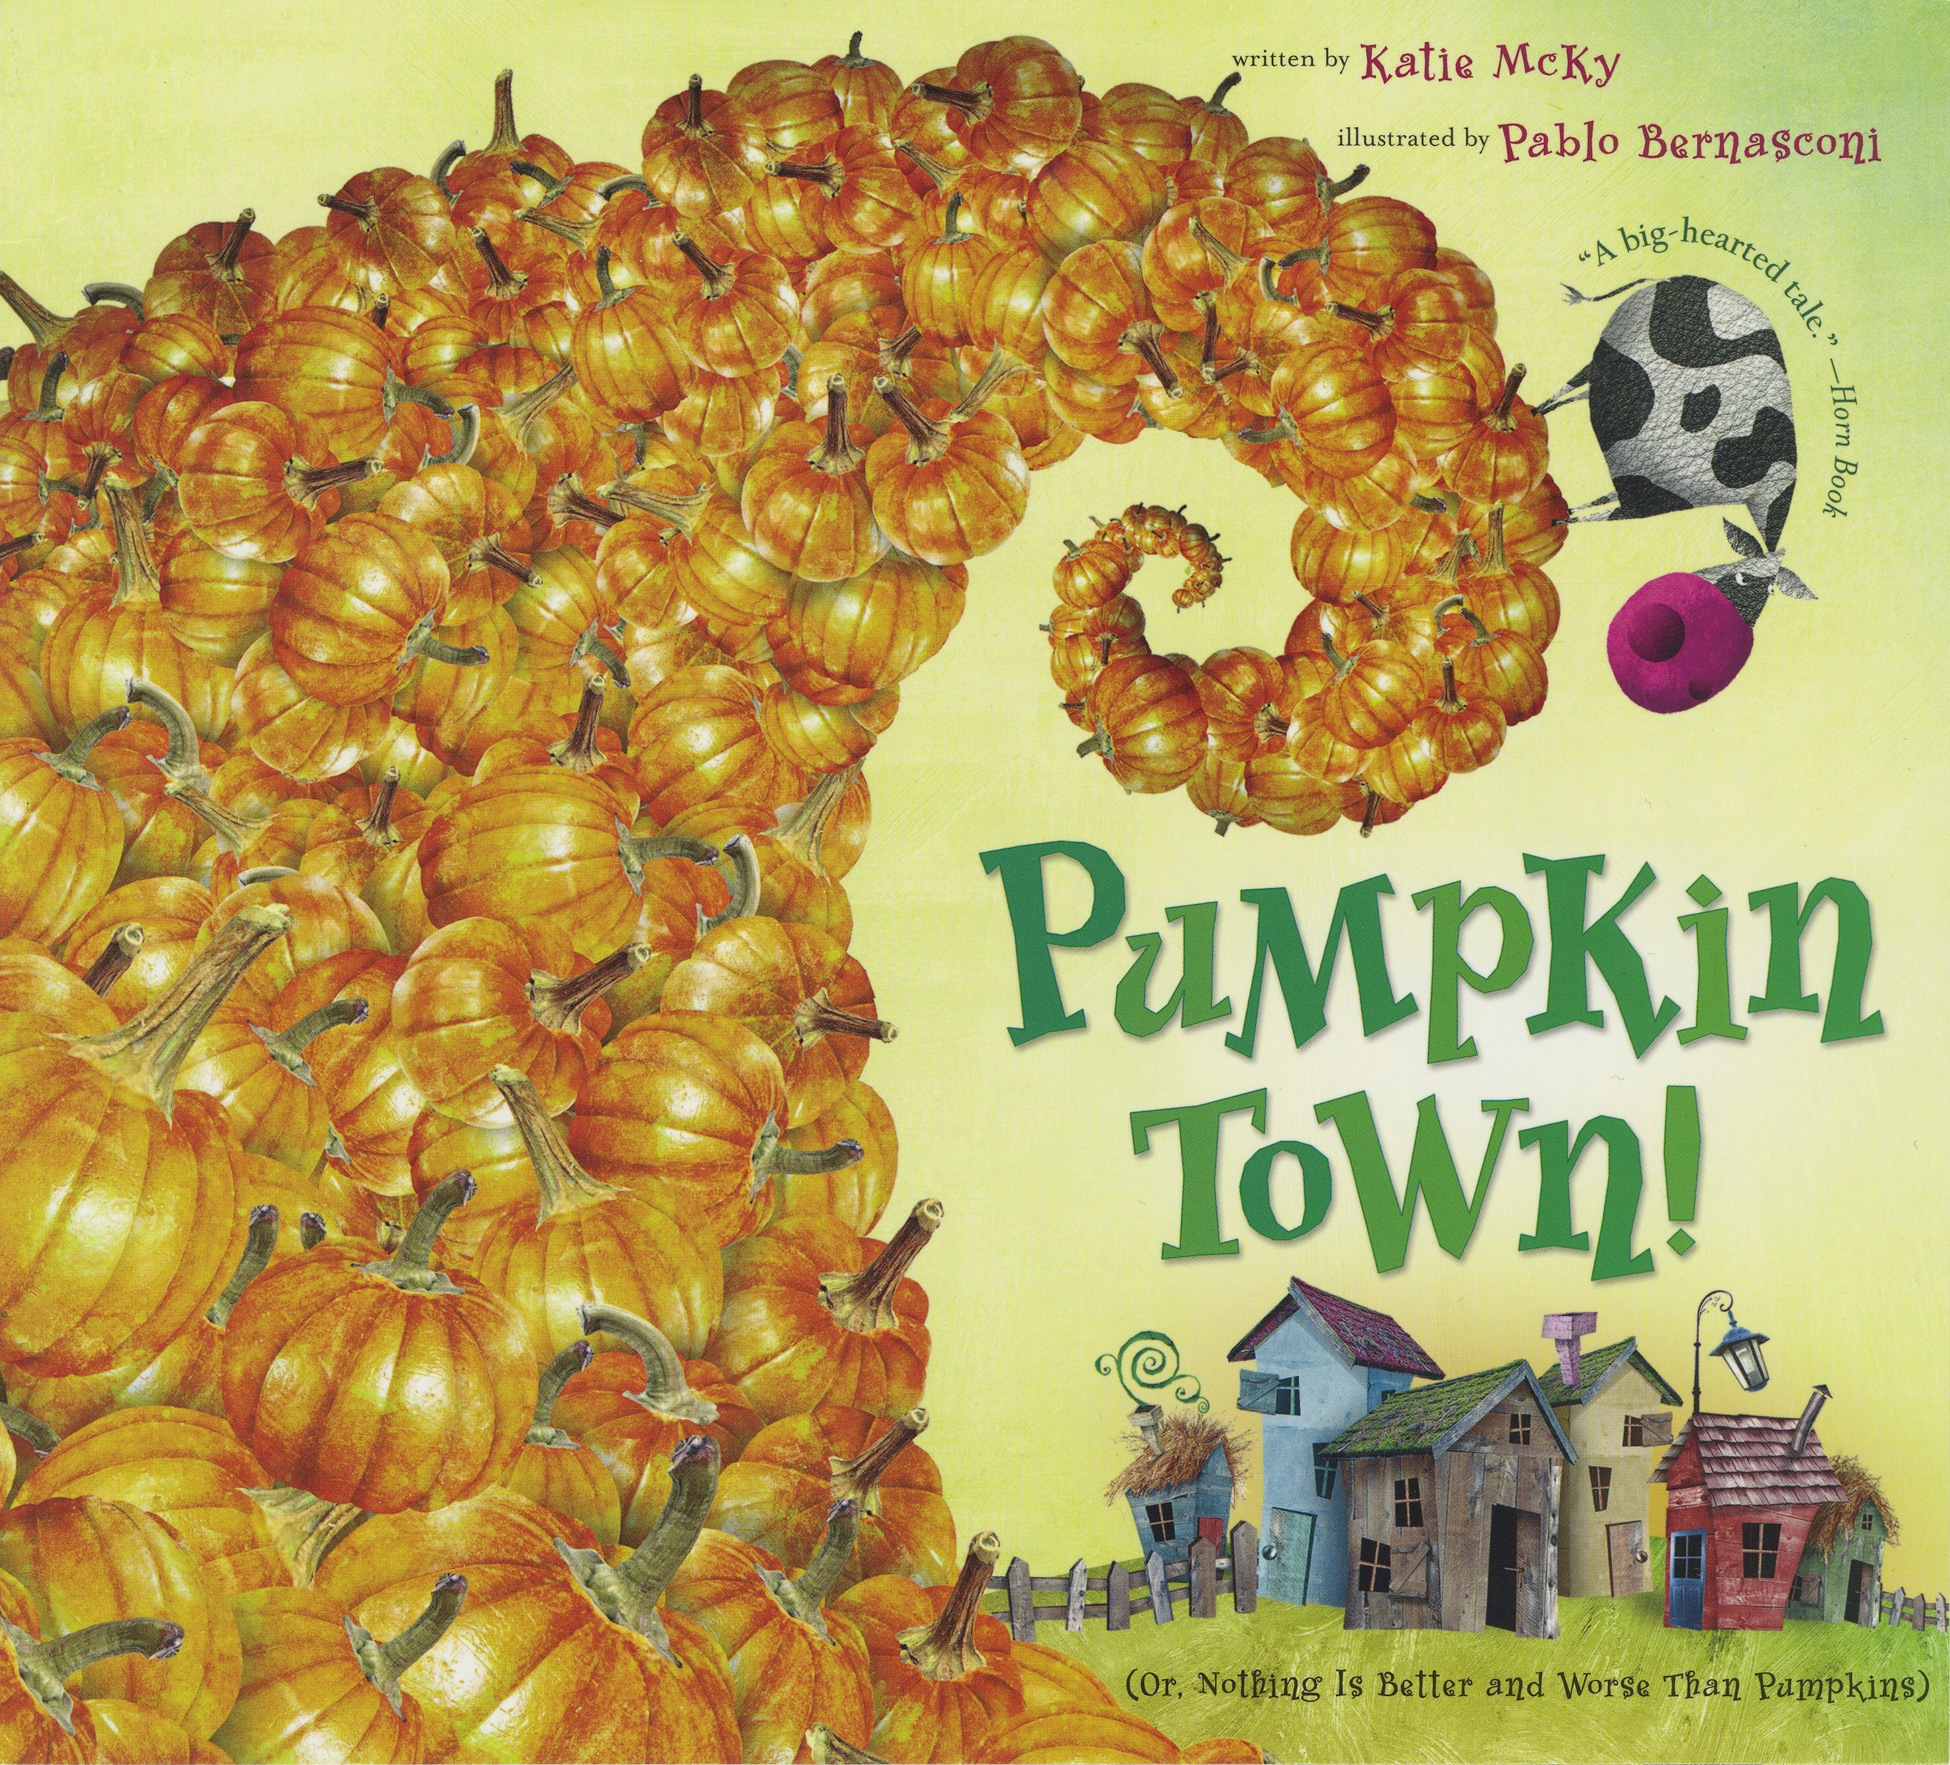 Pumpkin Town! Or, Nothing Is Better and Worse Than Pumpkins-9780547181936